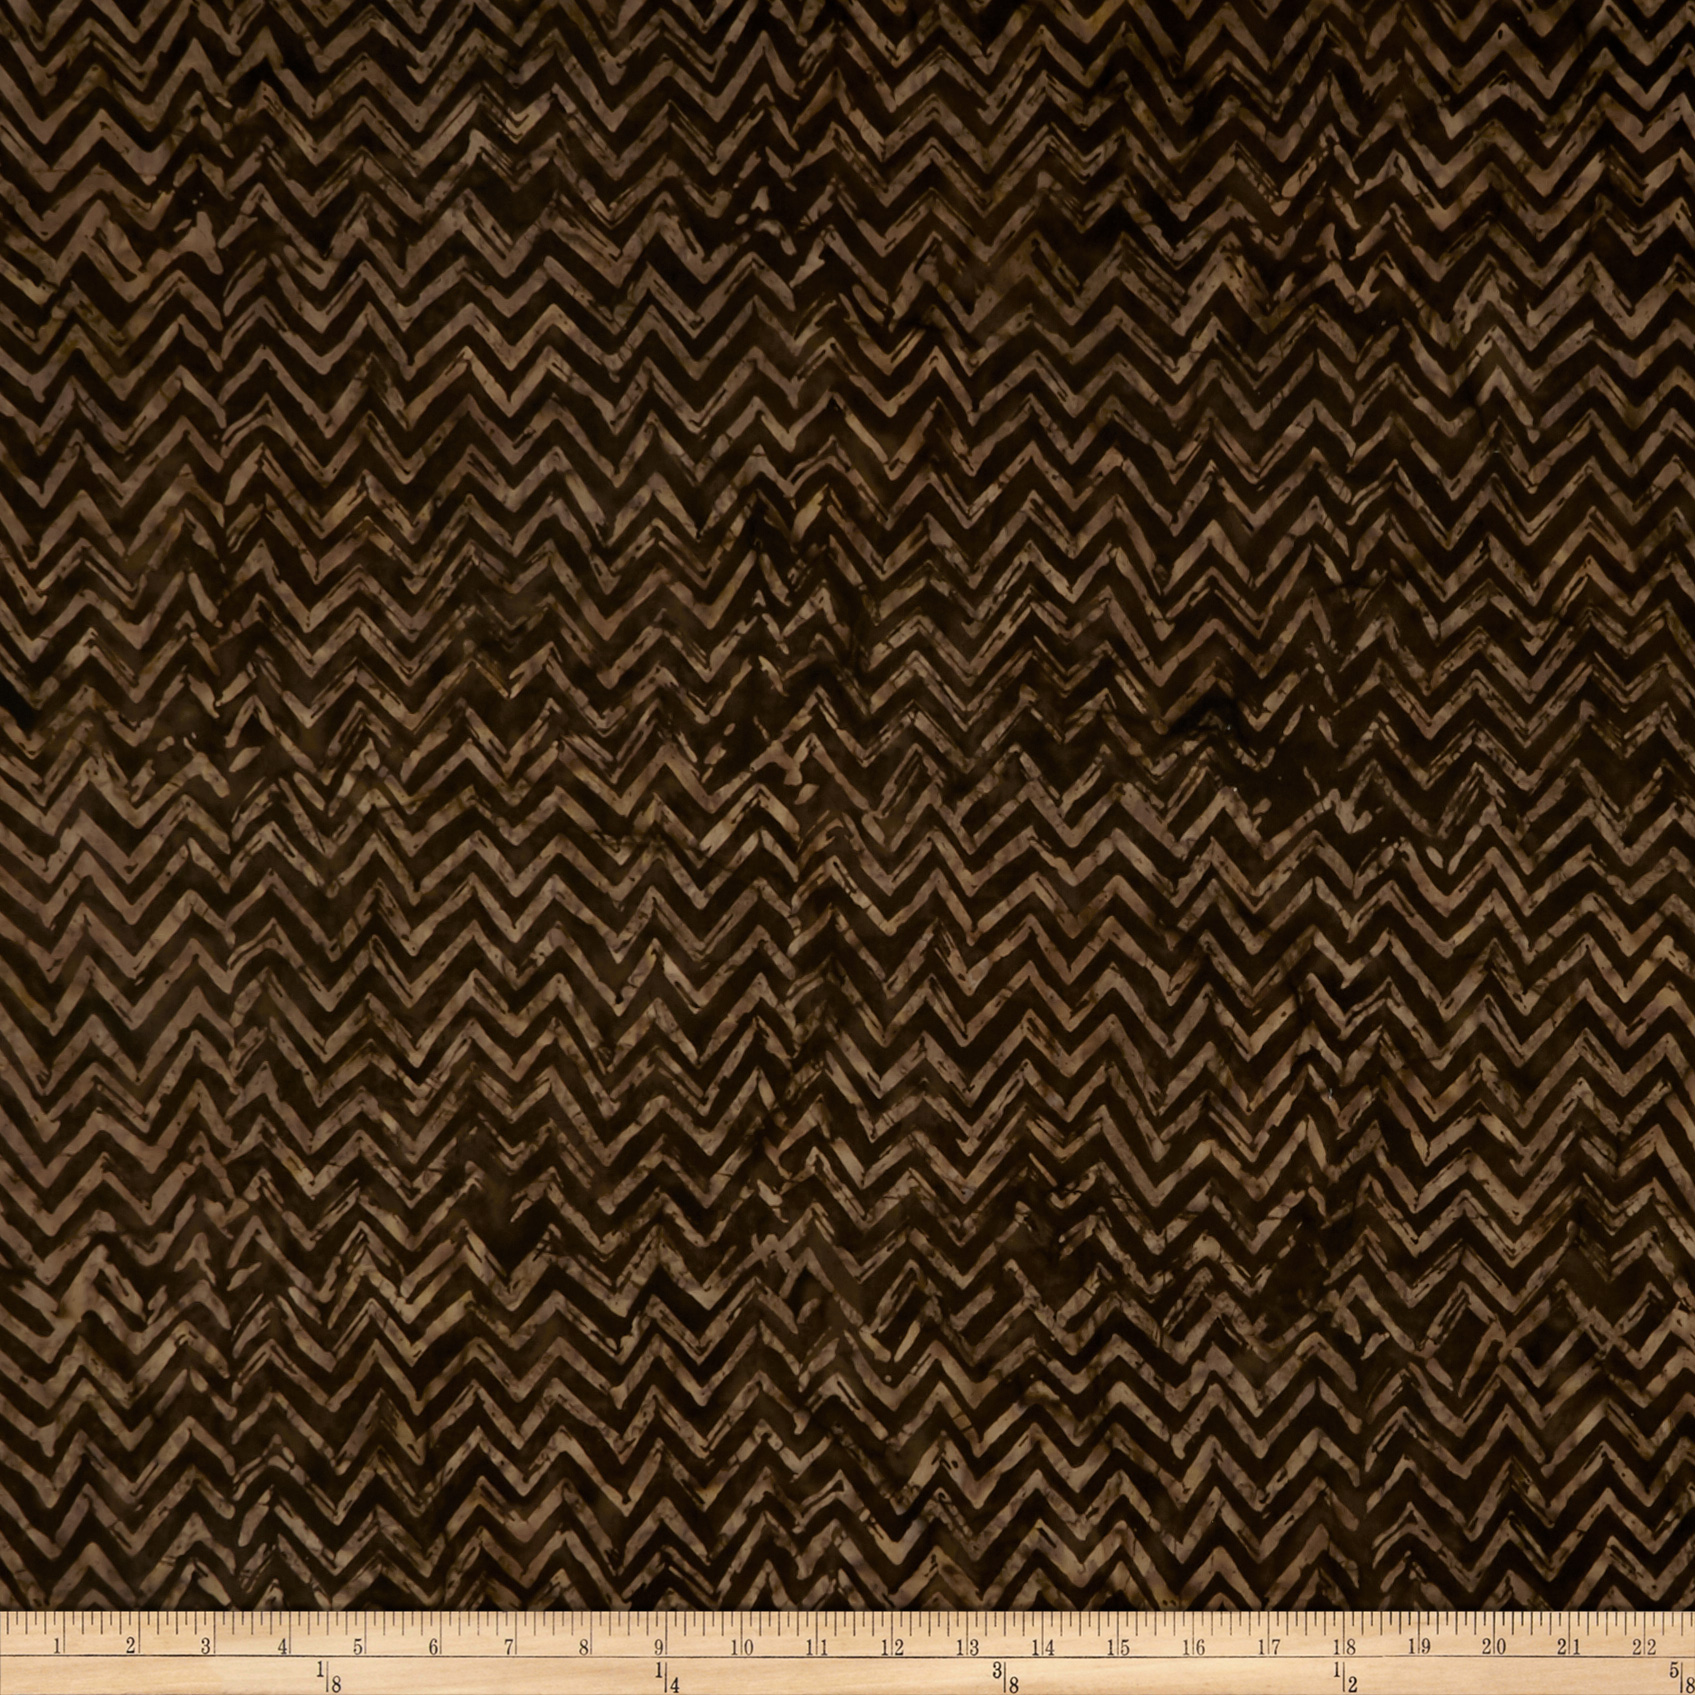 Anthology Batiks Chevron Soil Fabric